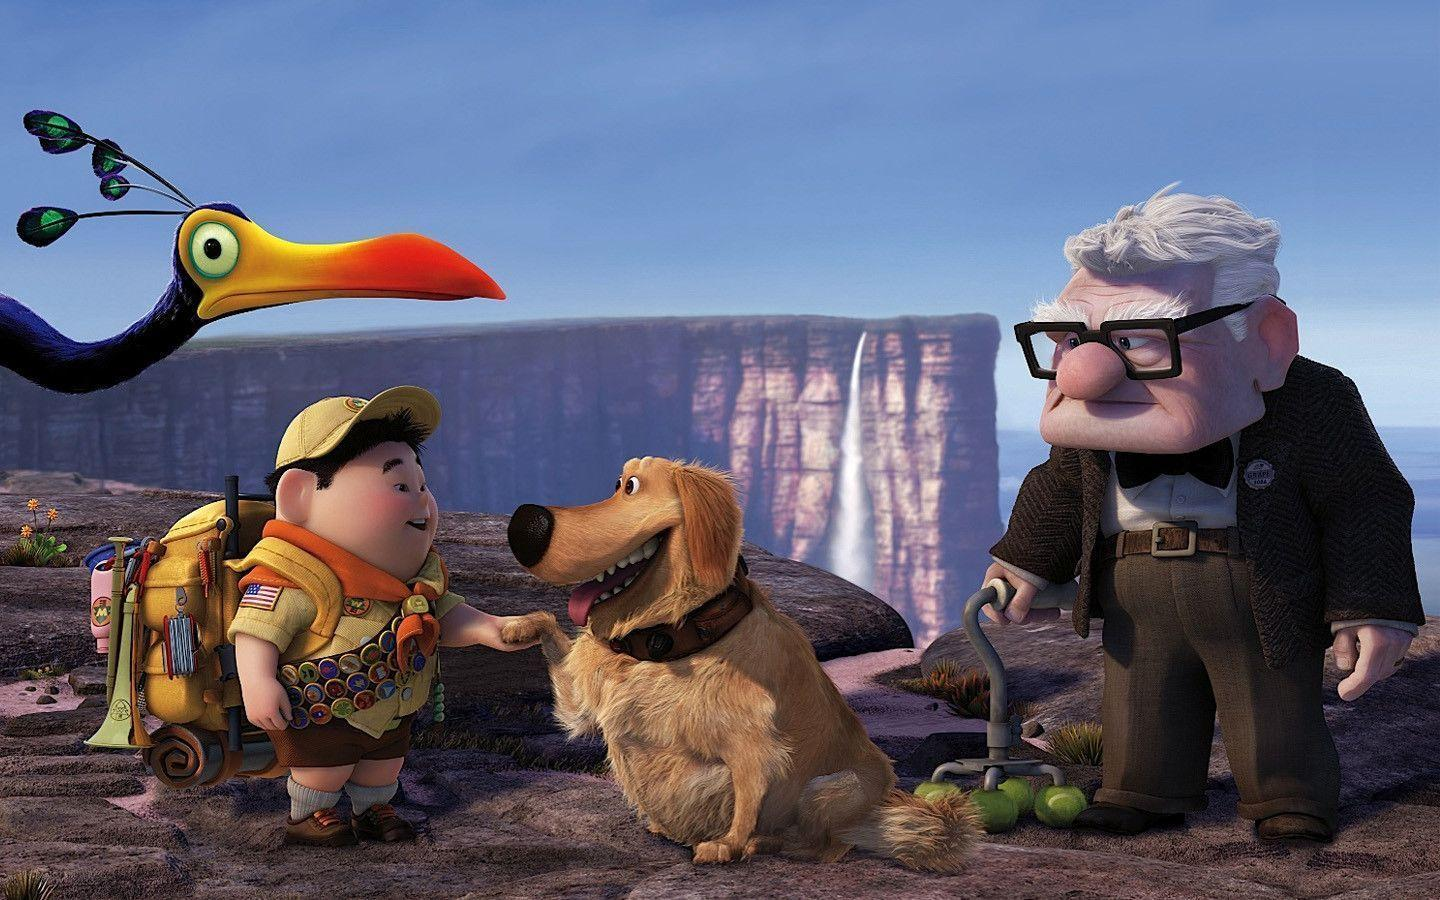 Russell Dug Carl Fredricksen in Pixar's UP Wallpapers | HD Wallpapers